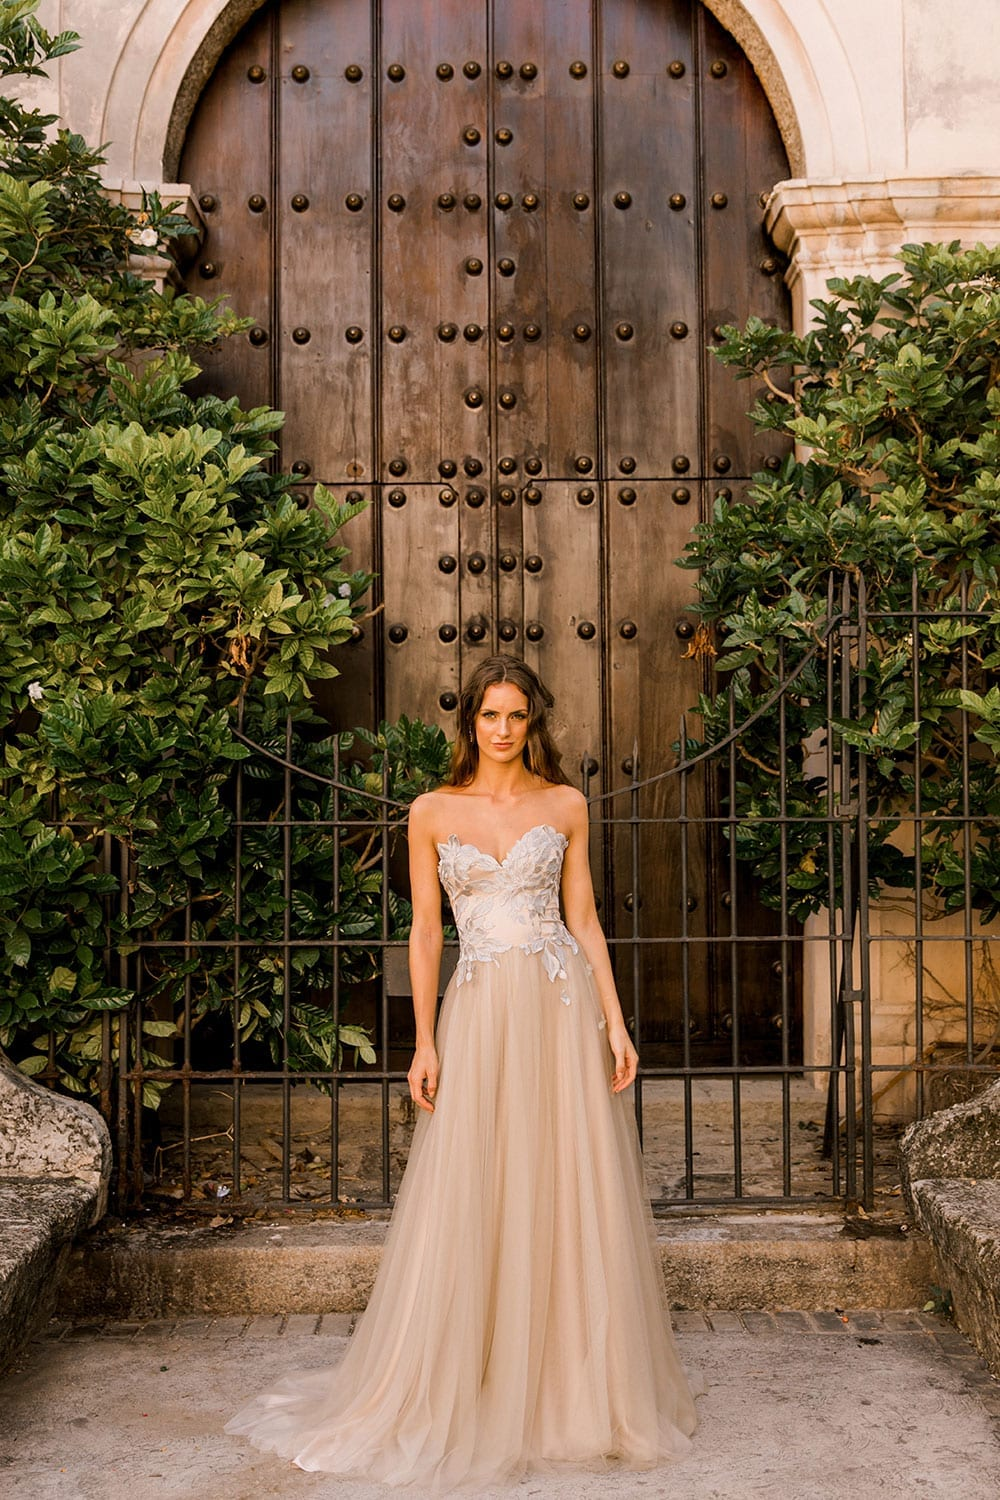 Model wearing Vinka Design Narnia Wedding Dress, a Strapless Tulle Gown with Silver Embroidered Lace Detail in front of a wooden doorway in Cuba